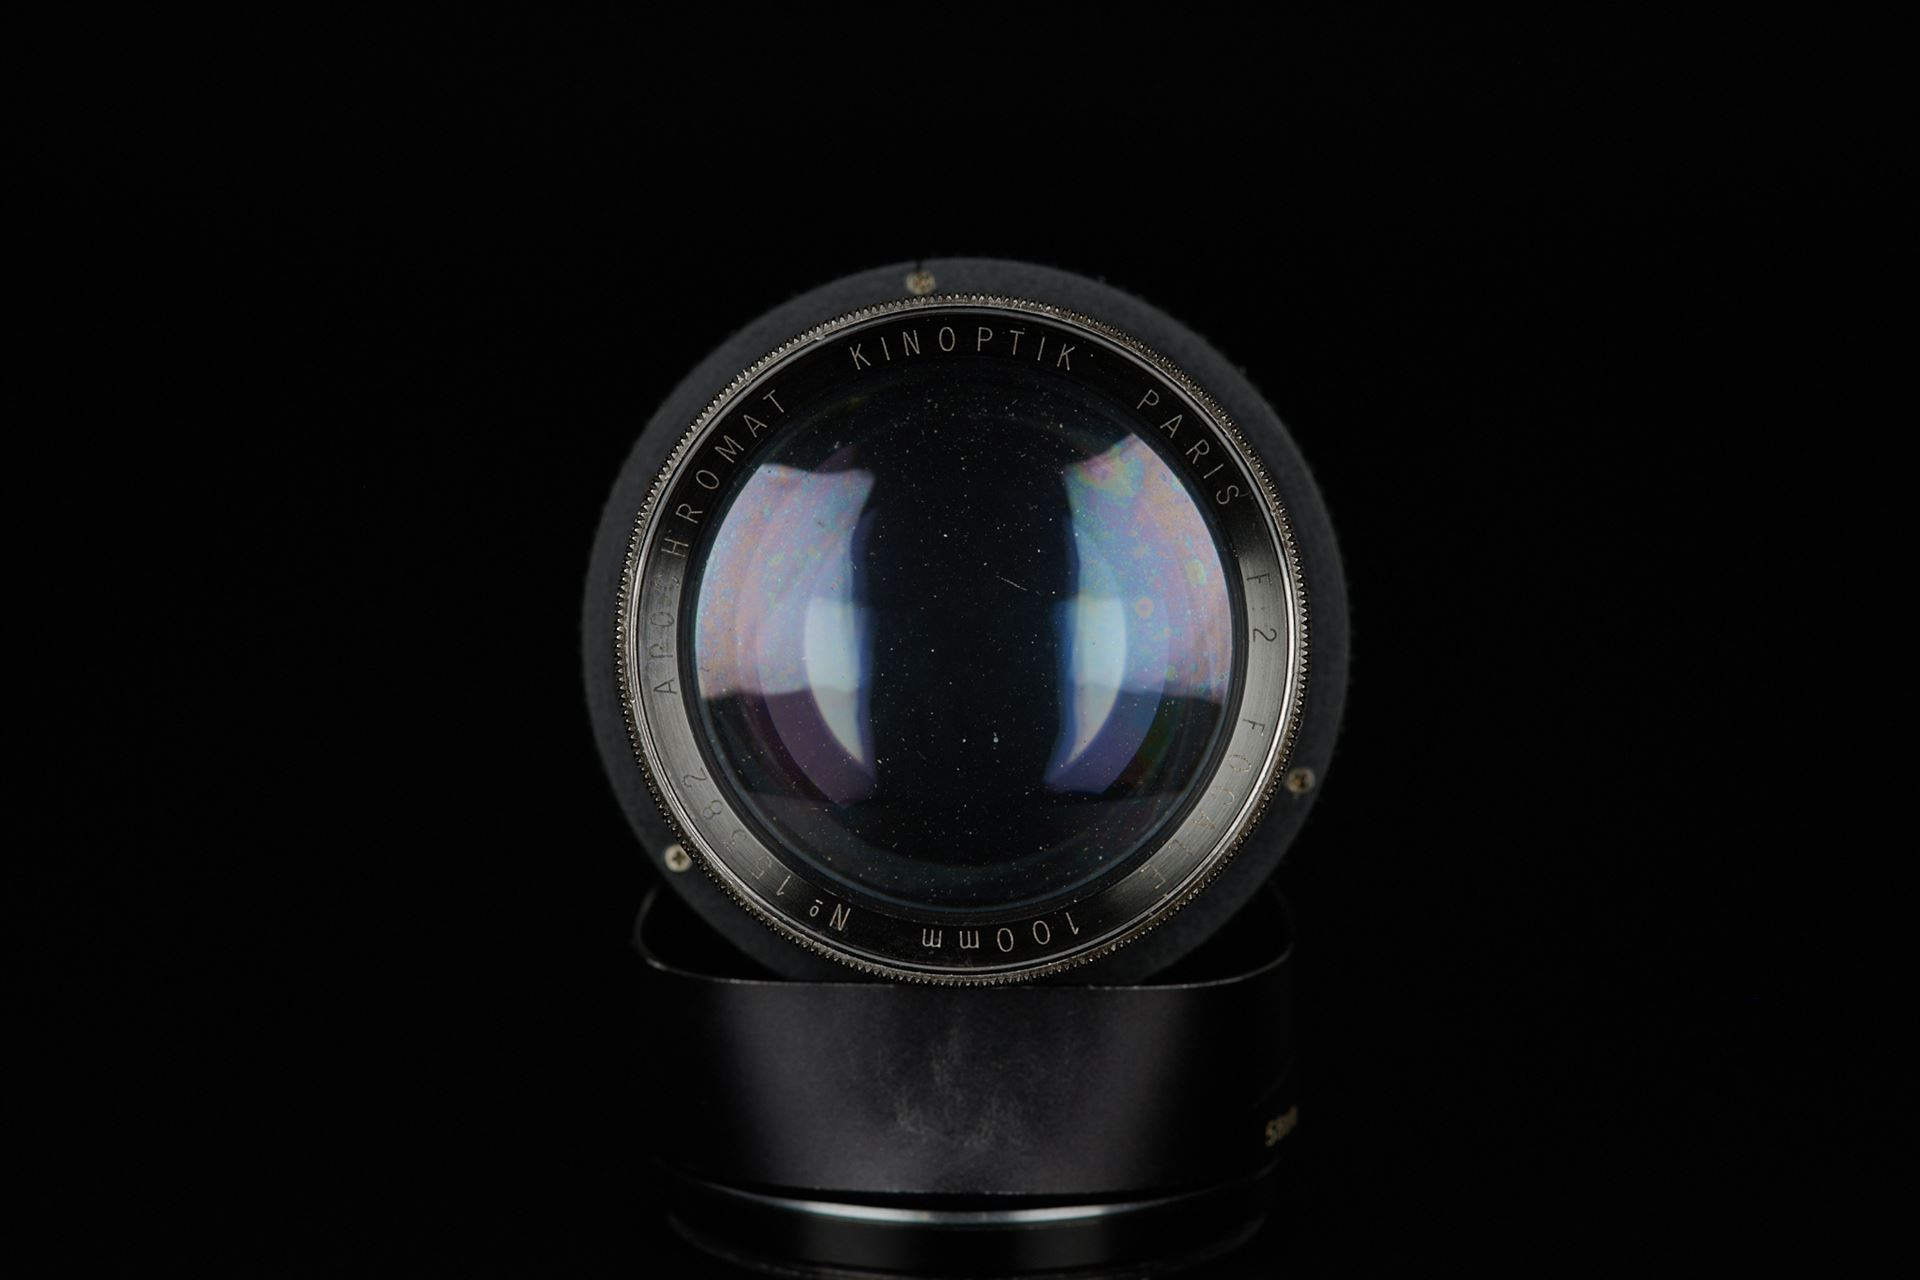 Picture of kinoptik apochromat focale 100mm f/2 mod. to hasselblad v